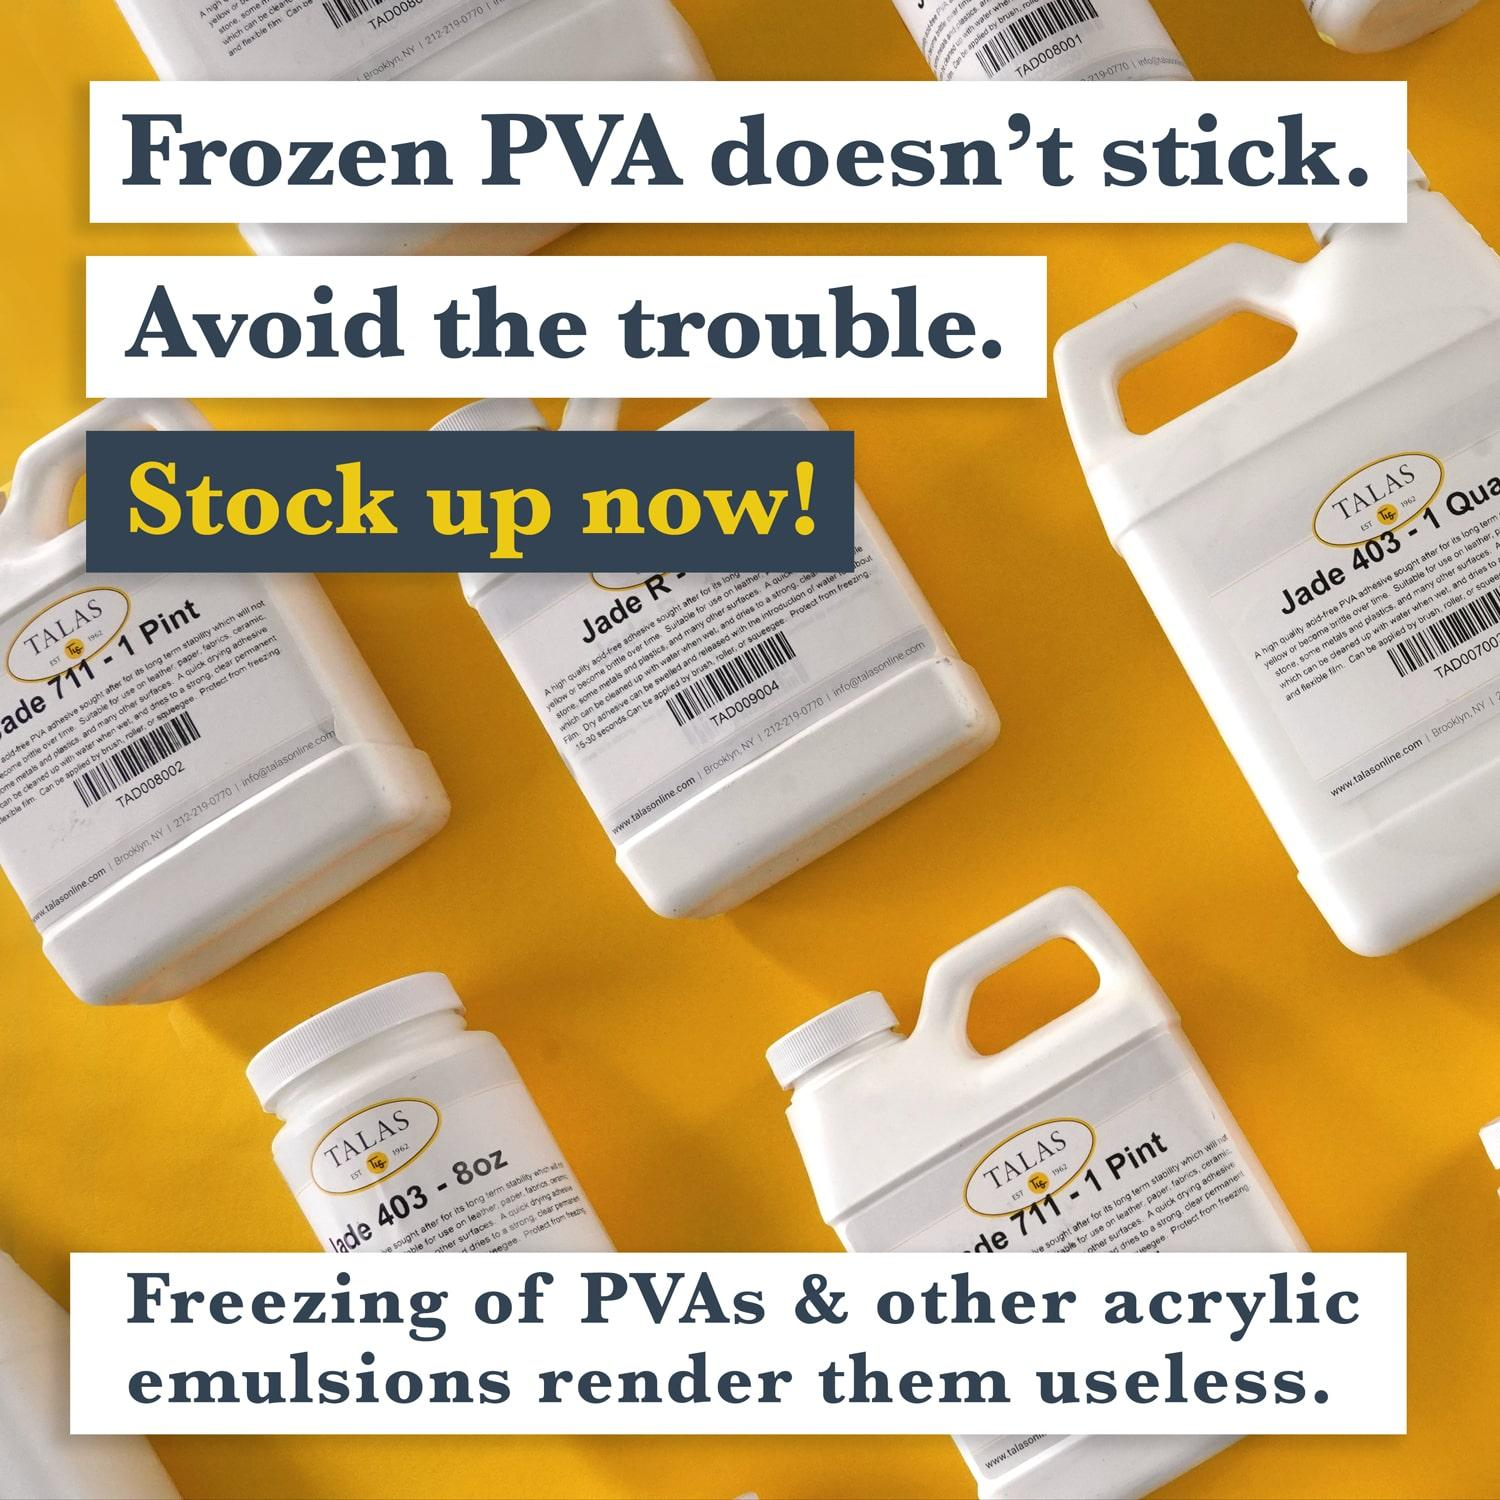 Frozen PVA doesn't stick. Stock up now!